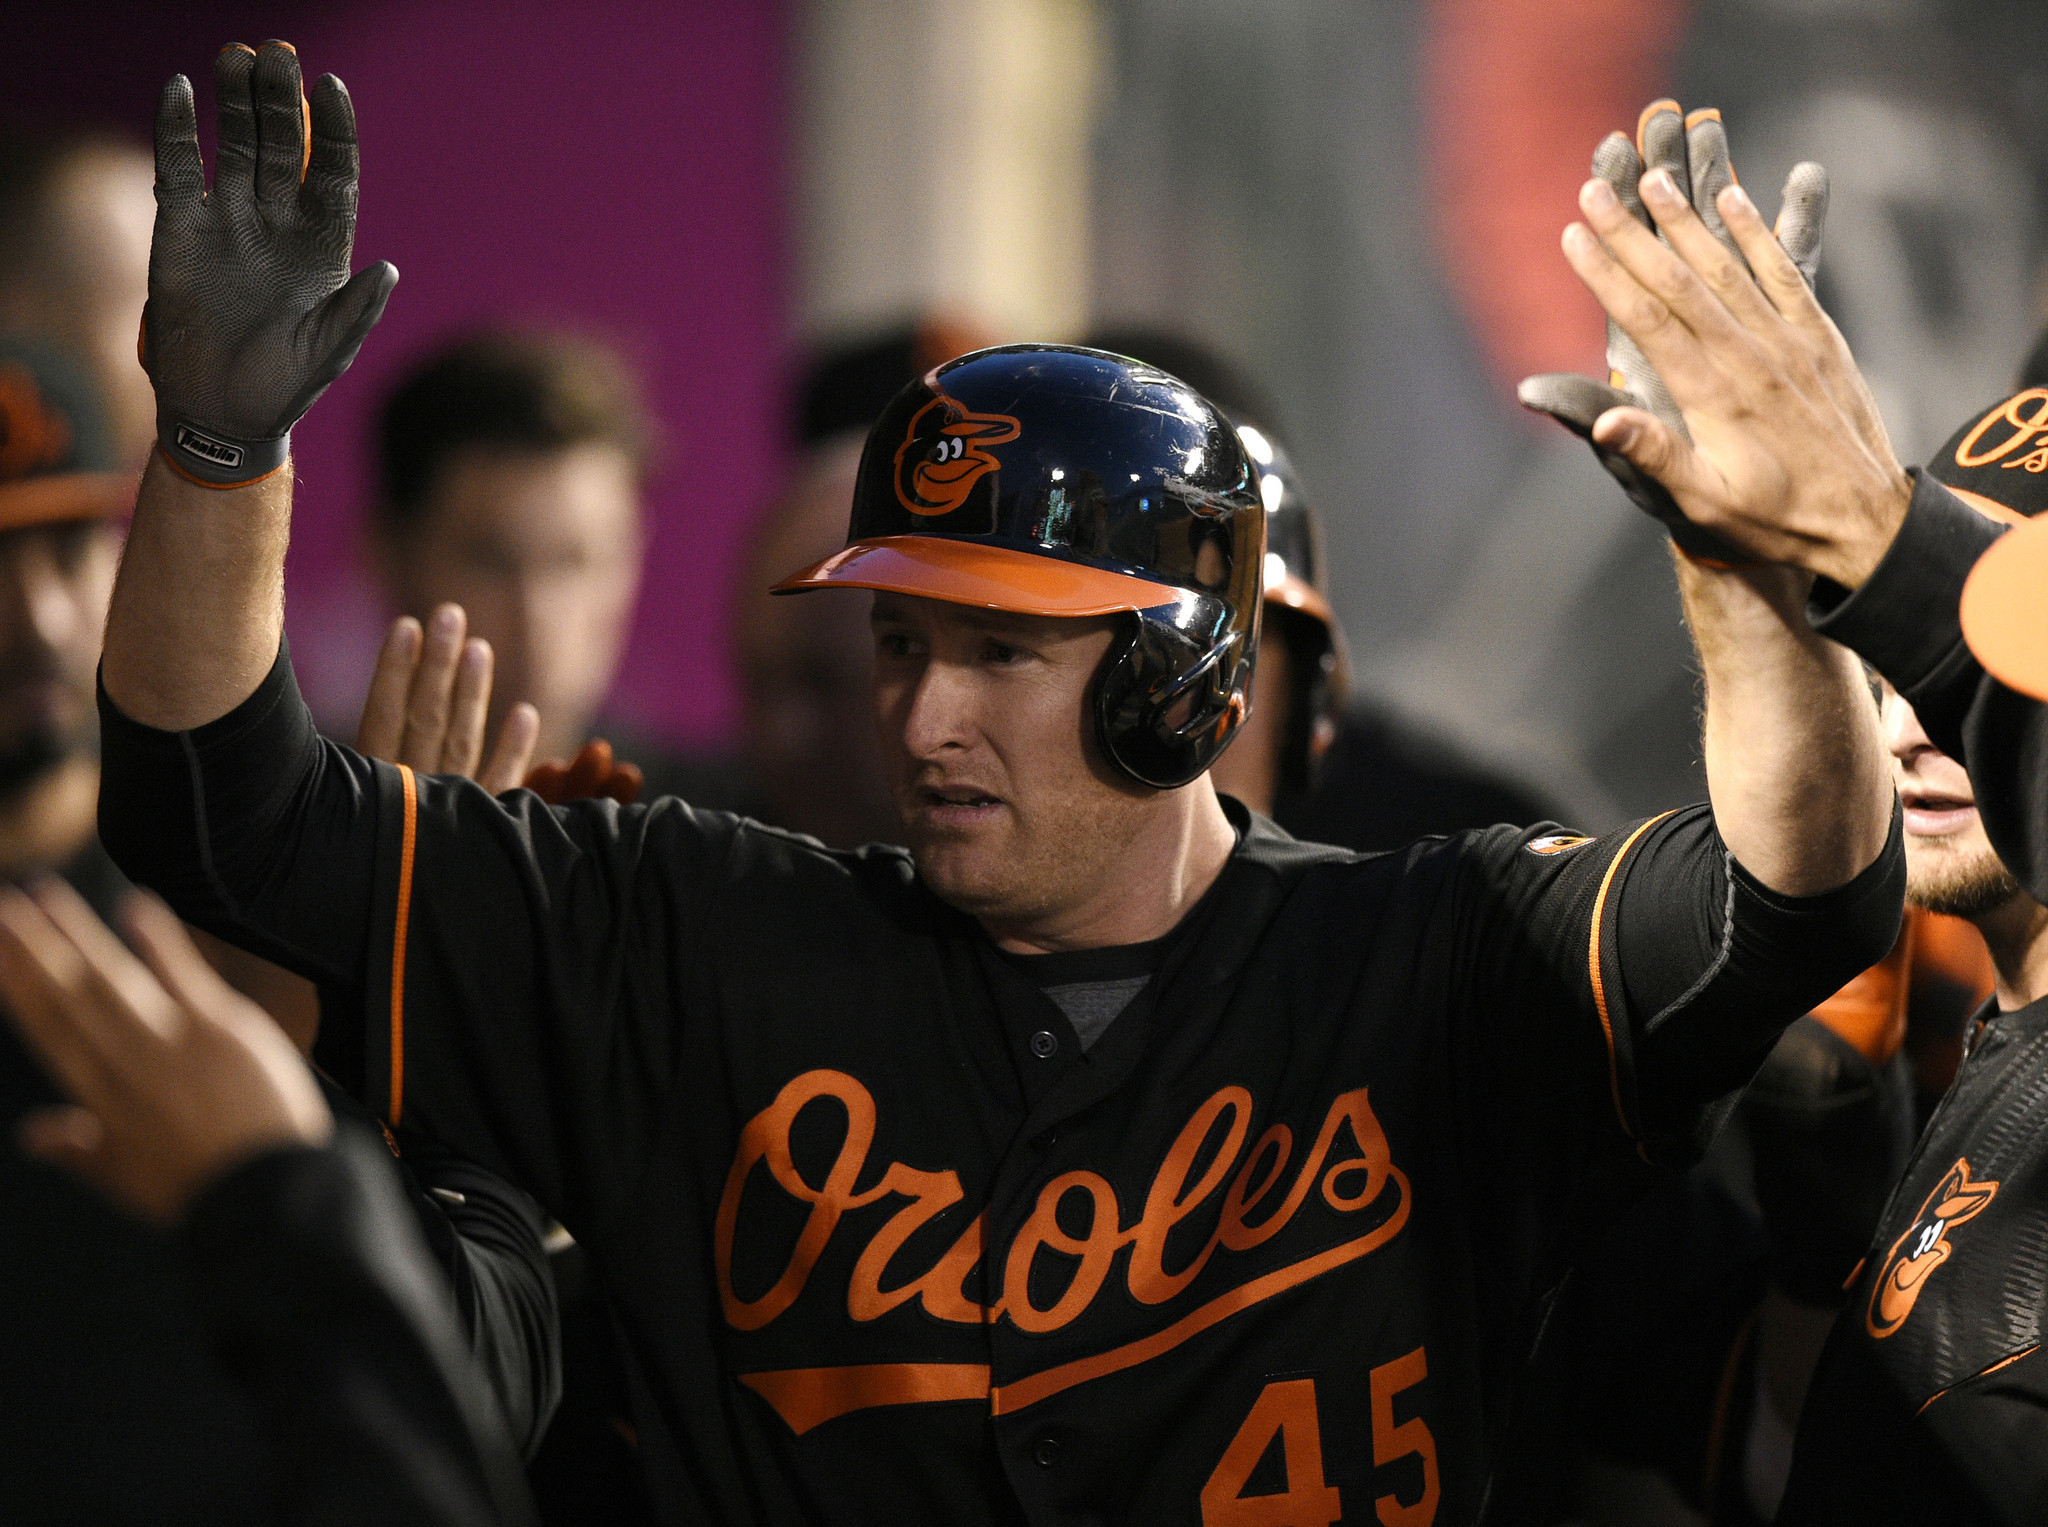 Bal-orioles-announce-three-year-deal-with-outfielder-mark-trumbo-designate-adam-walker-for-assignment-20170120